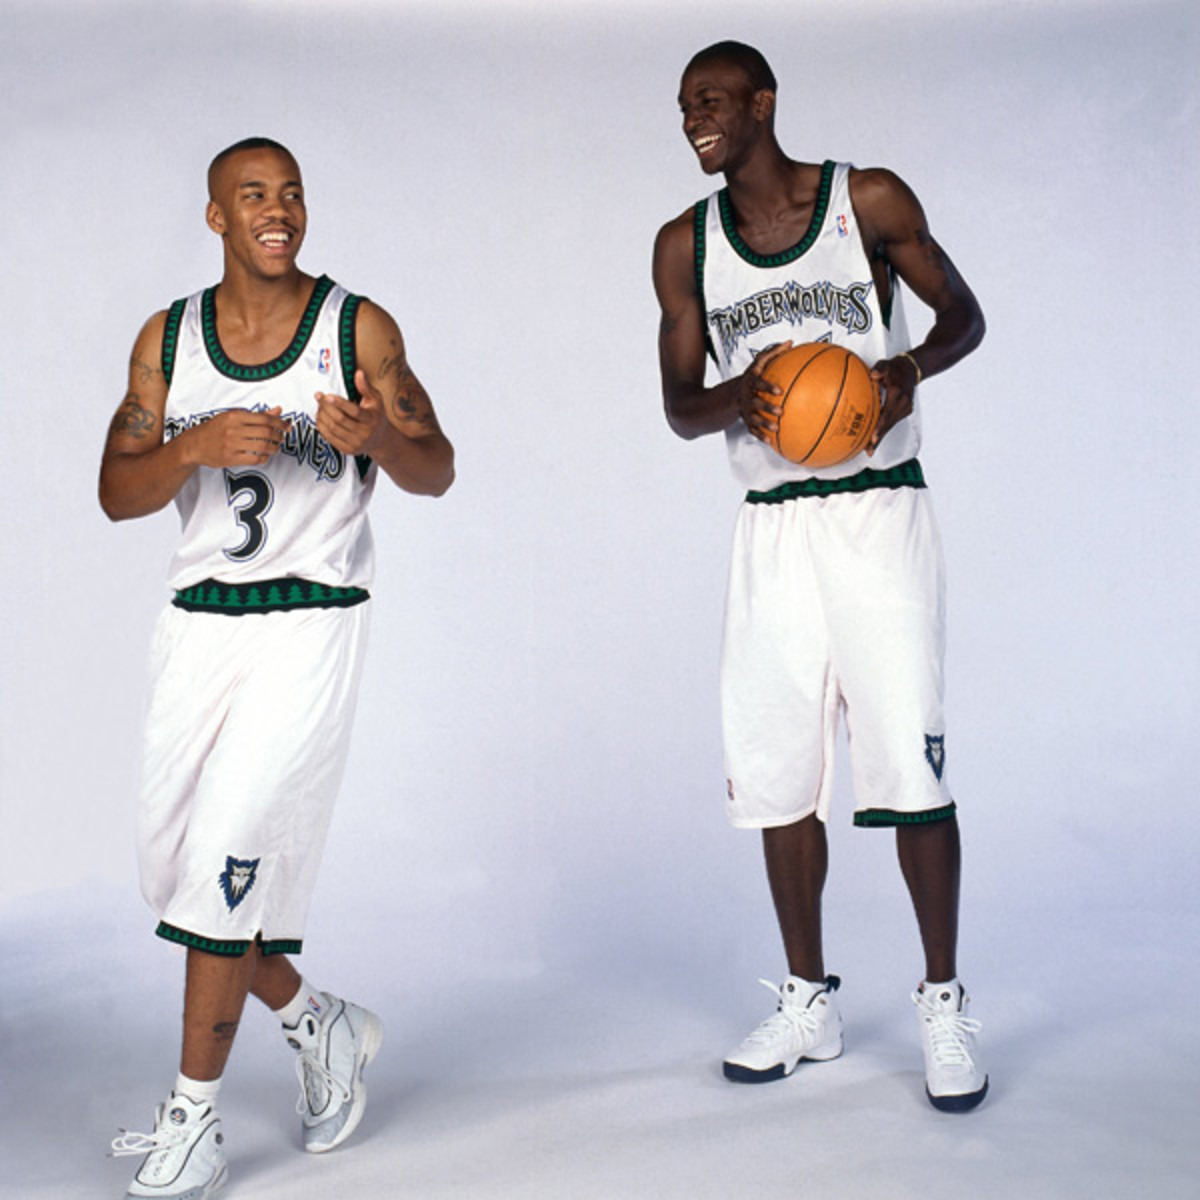 Stephon Marbury and Kevin Garnett (1998) :: Getty Images